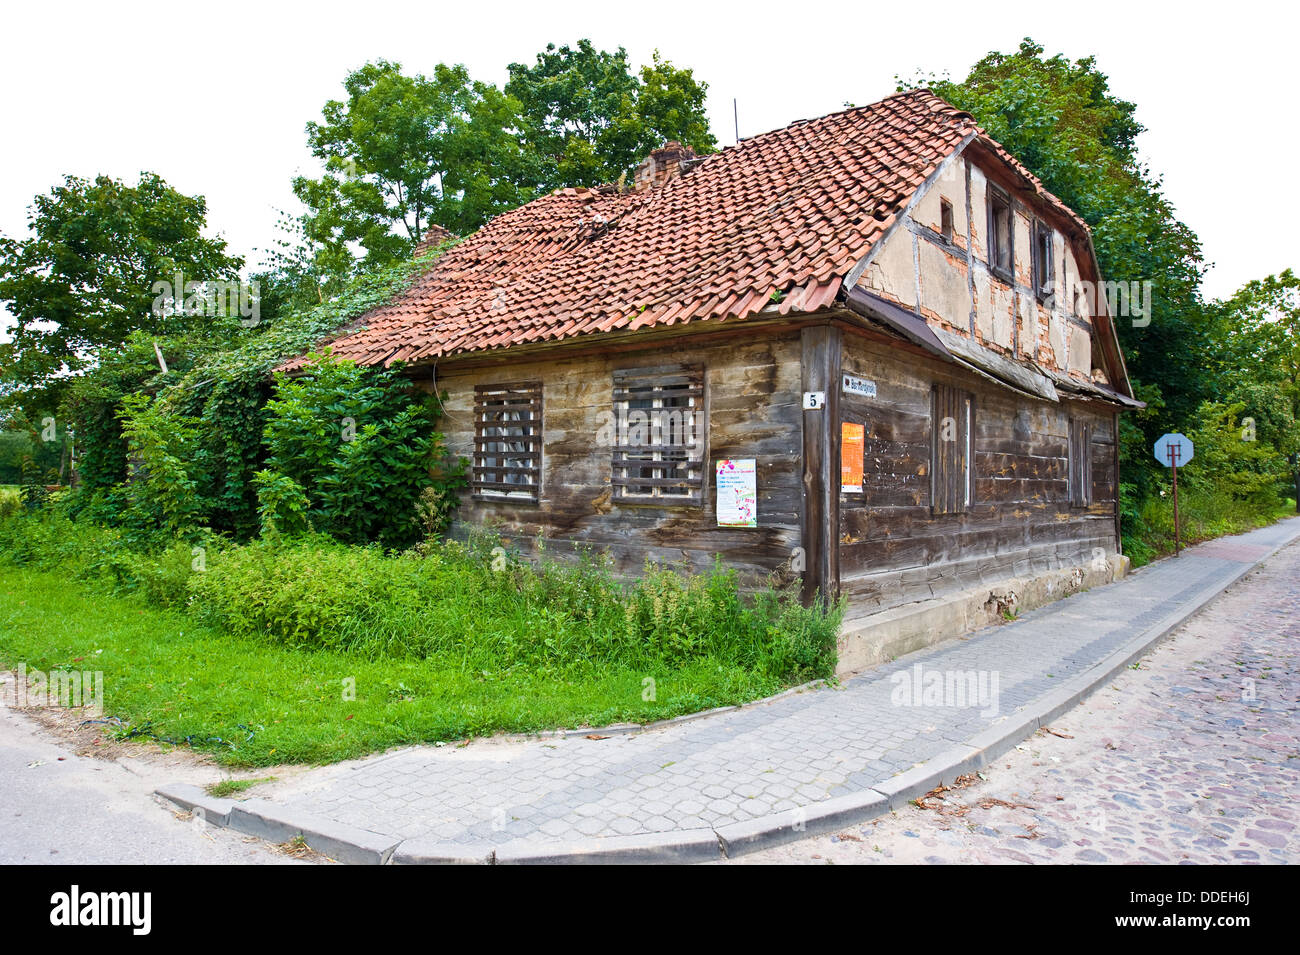 A very neglected old dwelling-house in Tykocin, a town in north-eastern Poland. - Stock Image